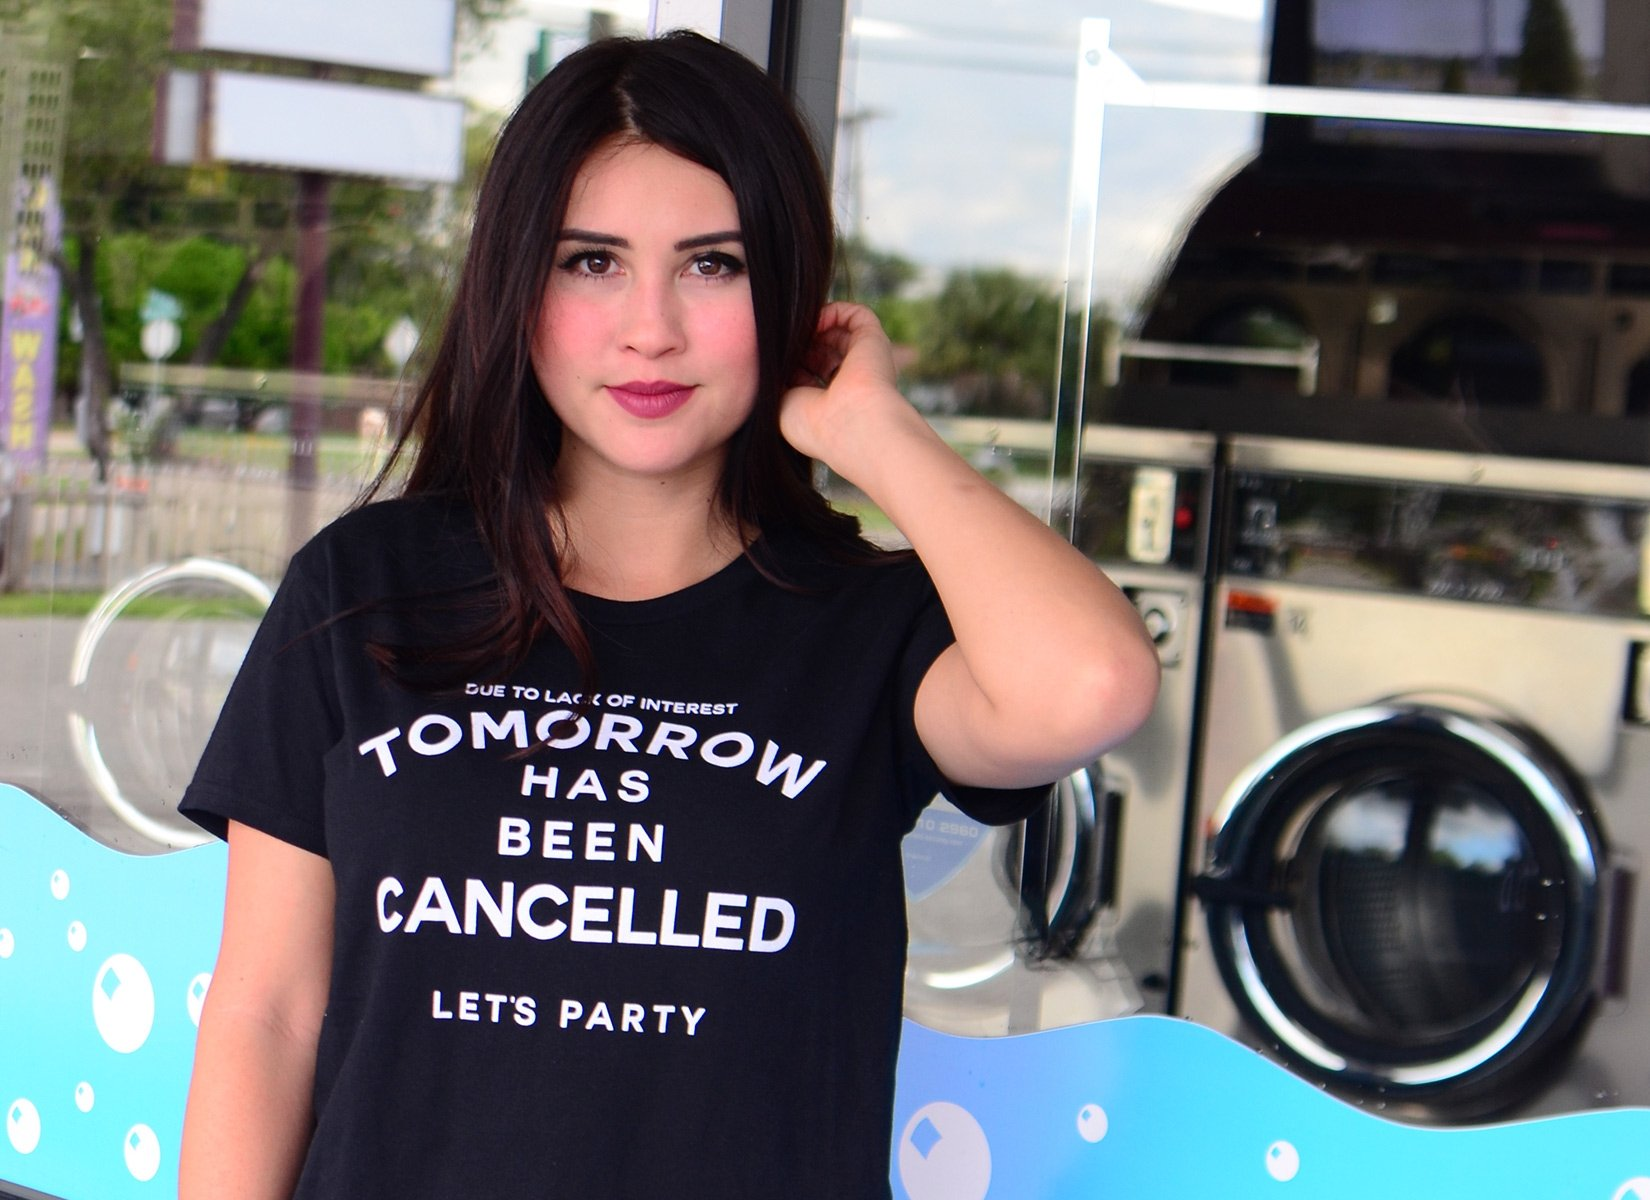 Tomorrow Has Been Cancelled on Womens T-Shirt